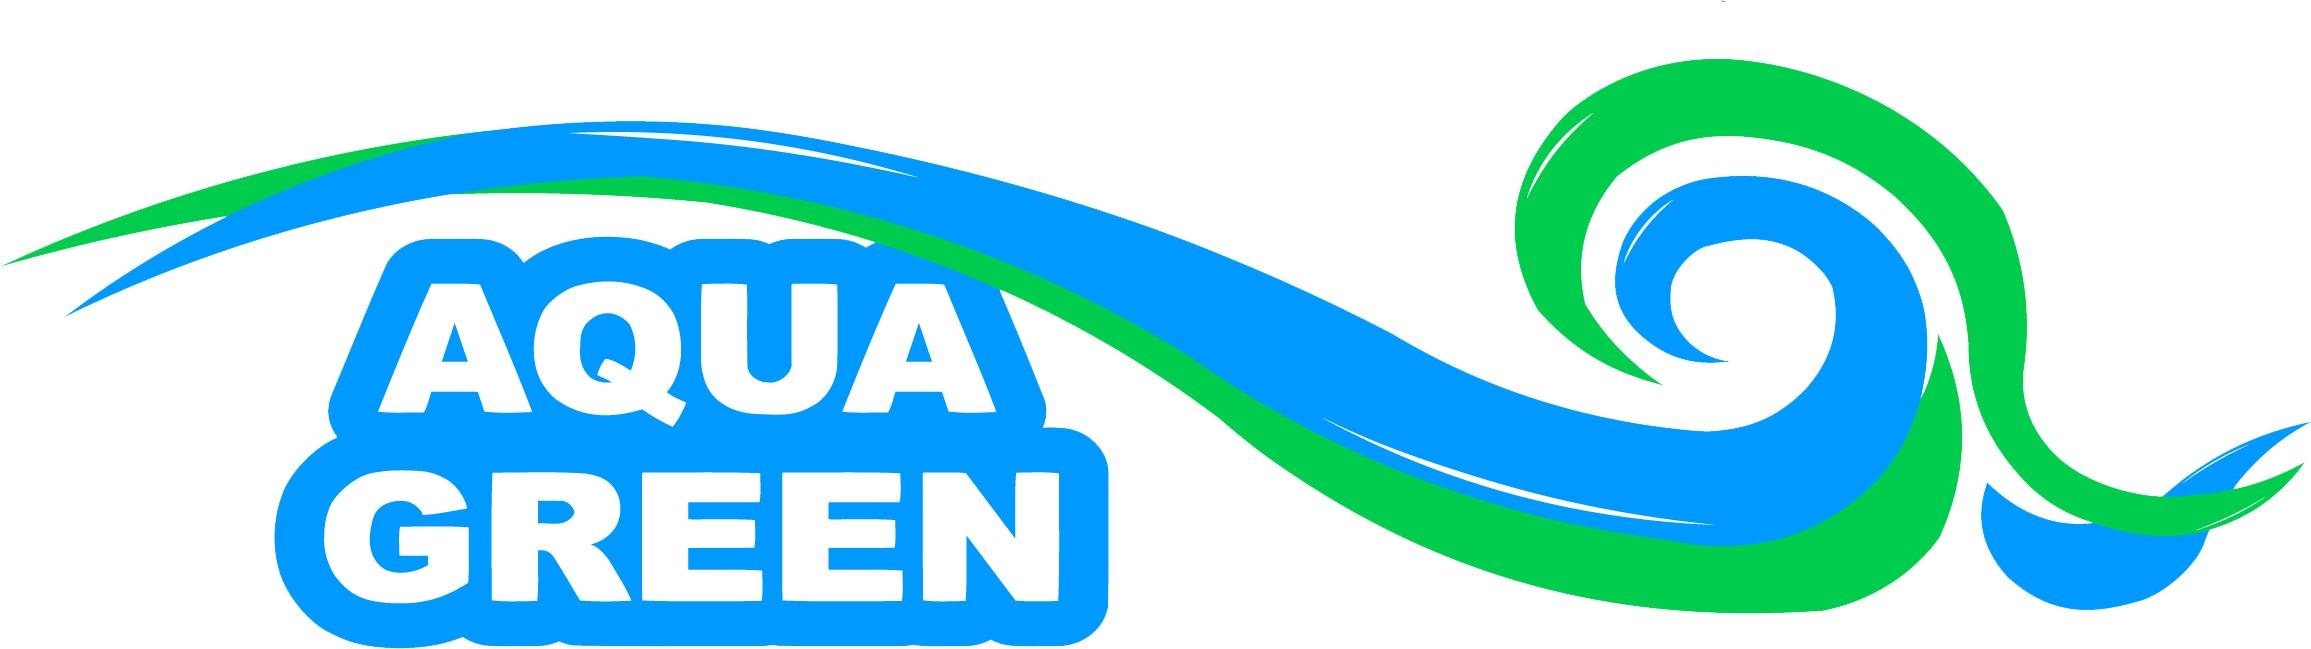 aquagreen logo_1_34